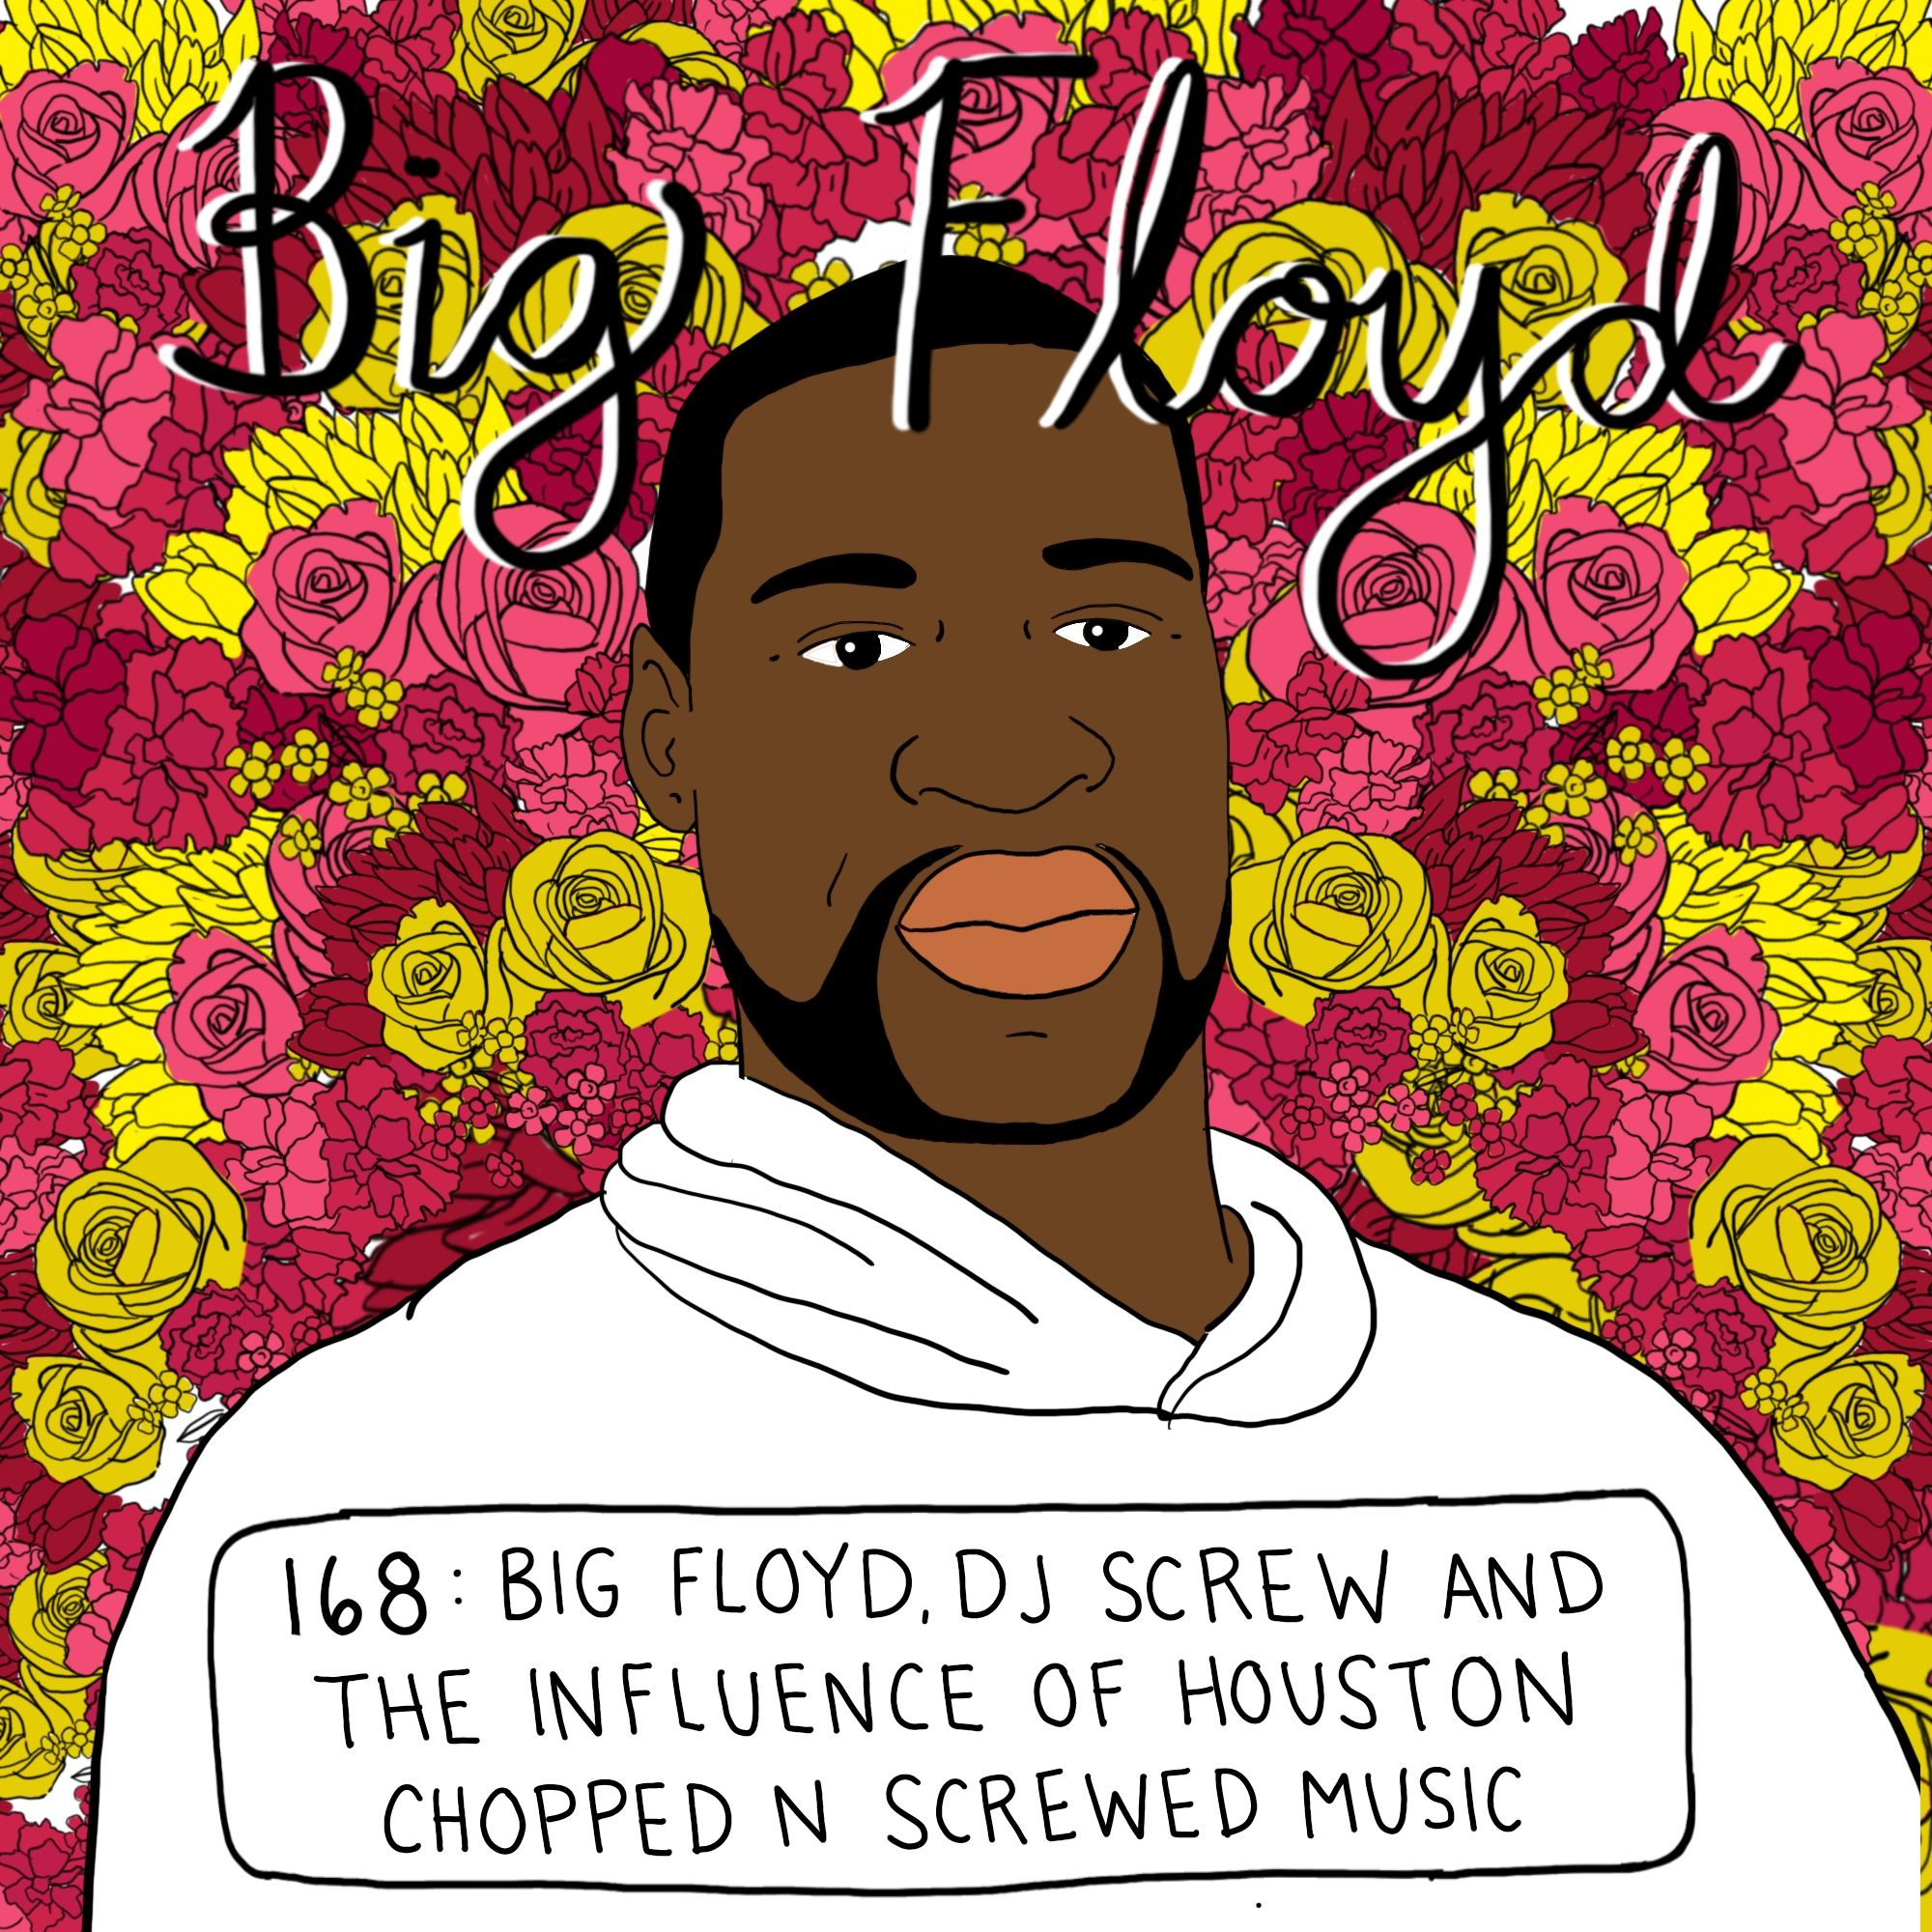 Big Floyd And The Influence Of Houston Chopped N Screwed Music